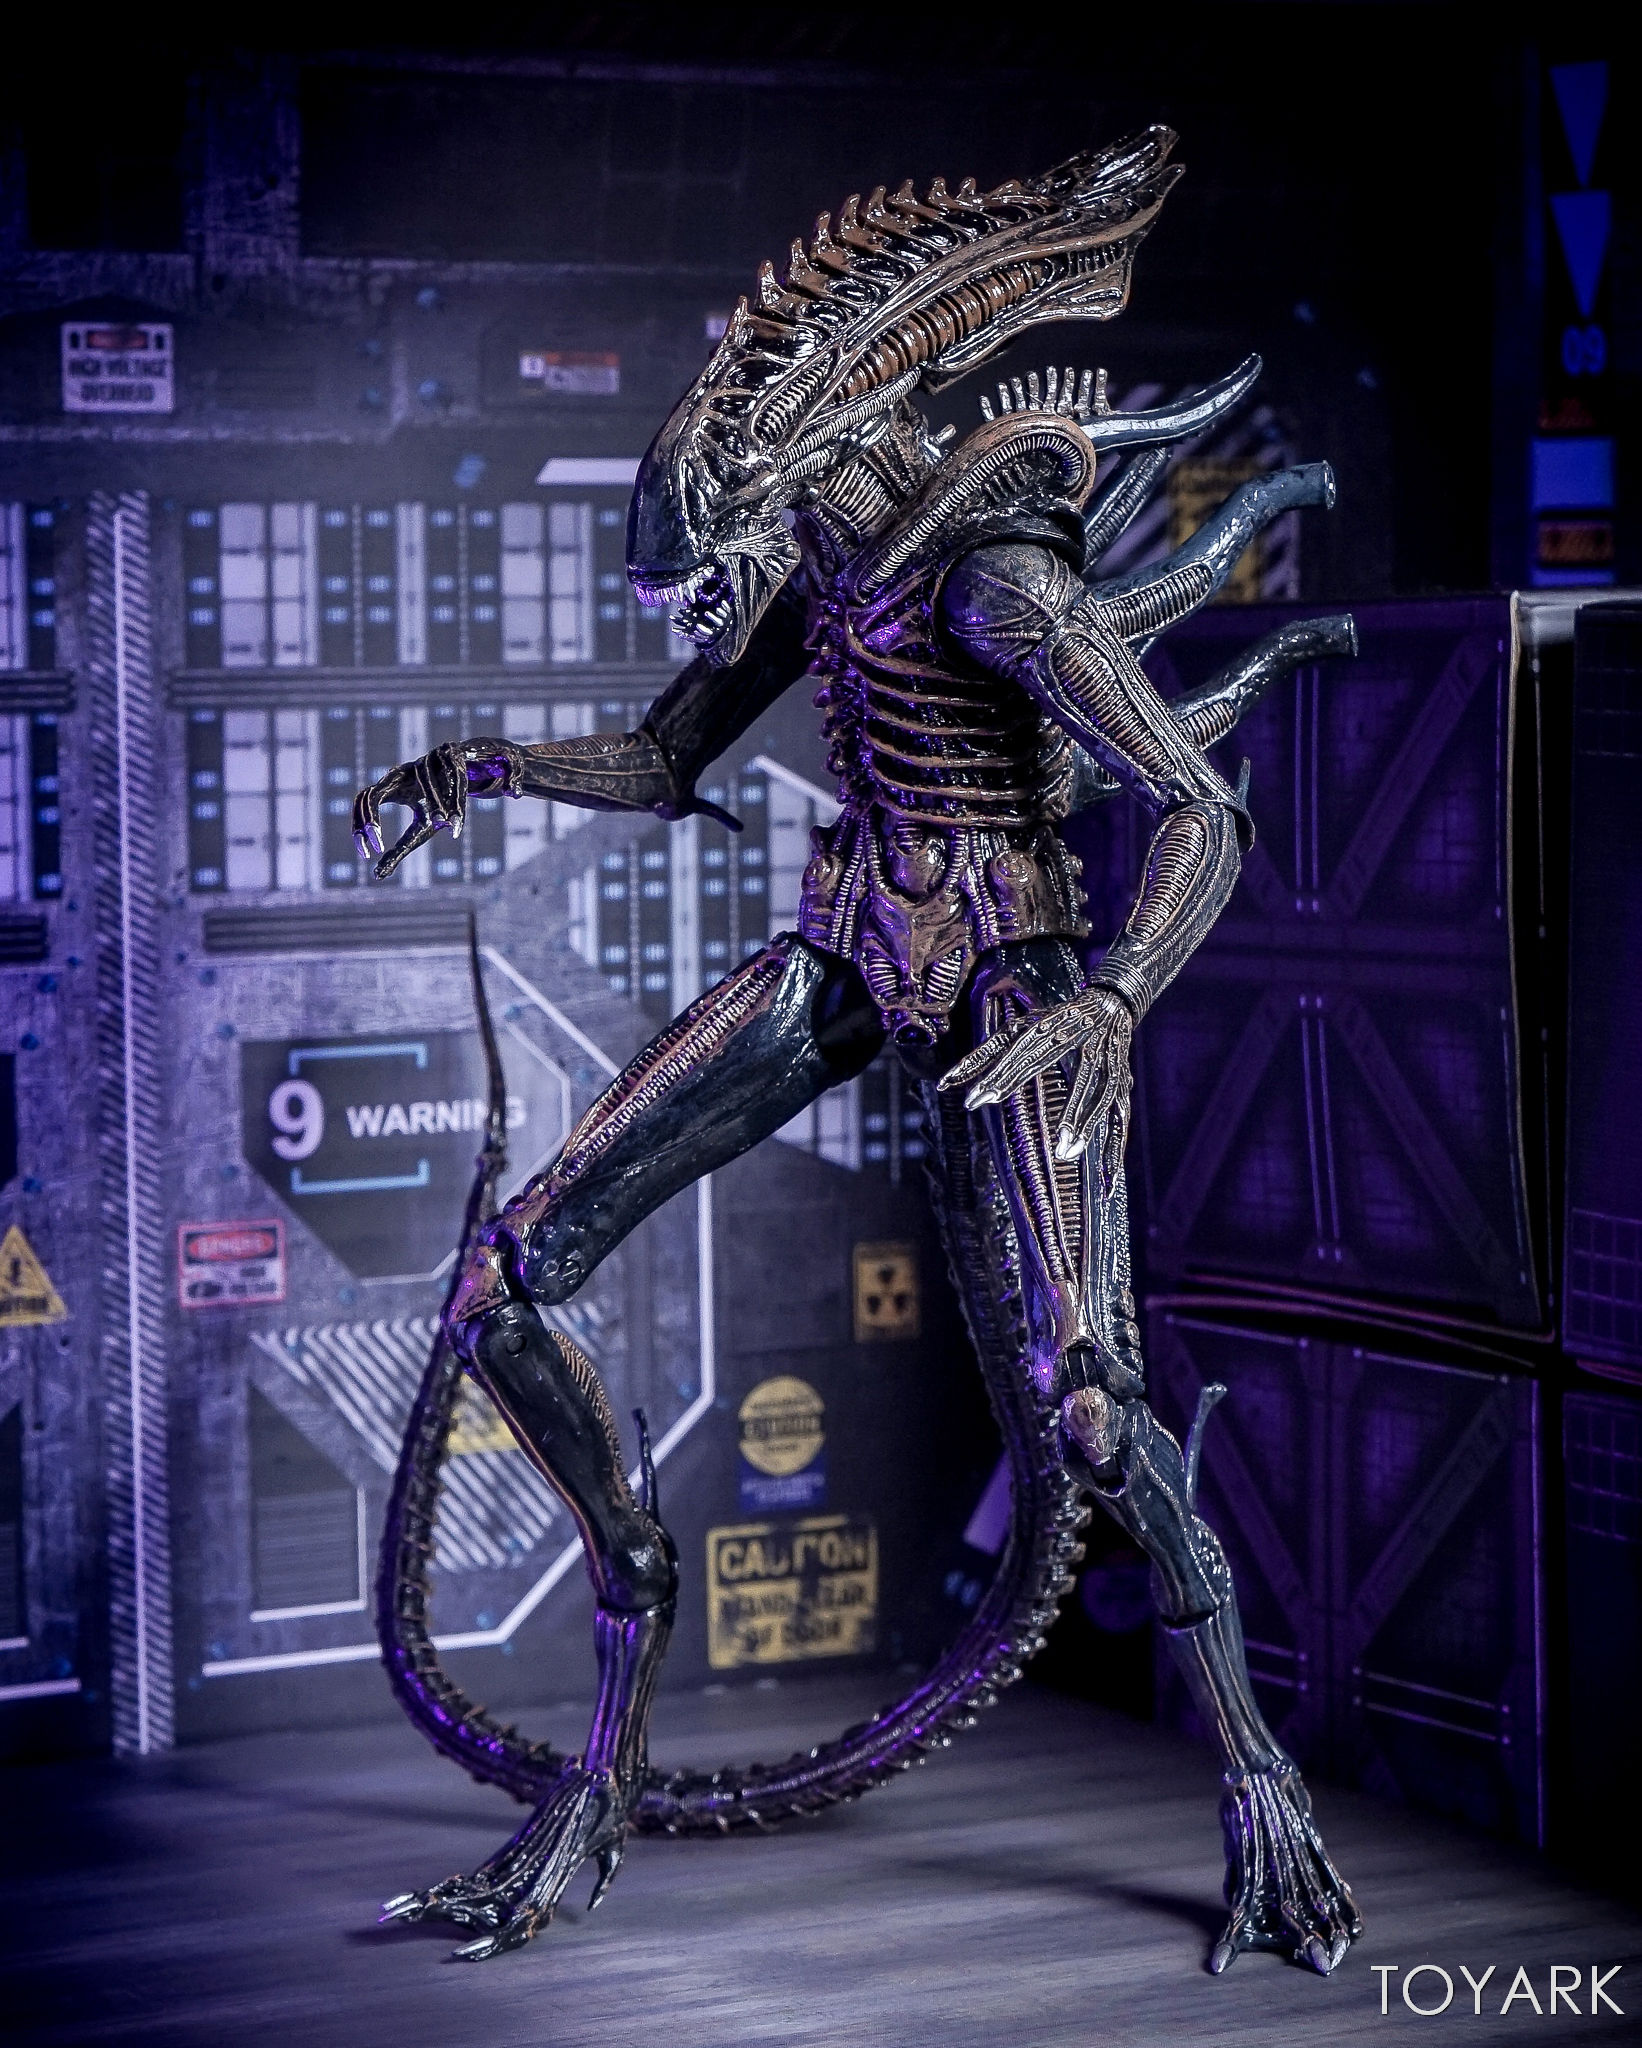 http://news.toyark.com/wp-content/uploads/sites/4/2017/08/NECA-Alien-Series-11-Figures-054.jpg